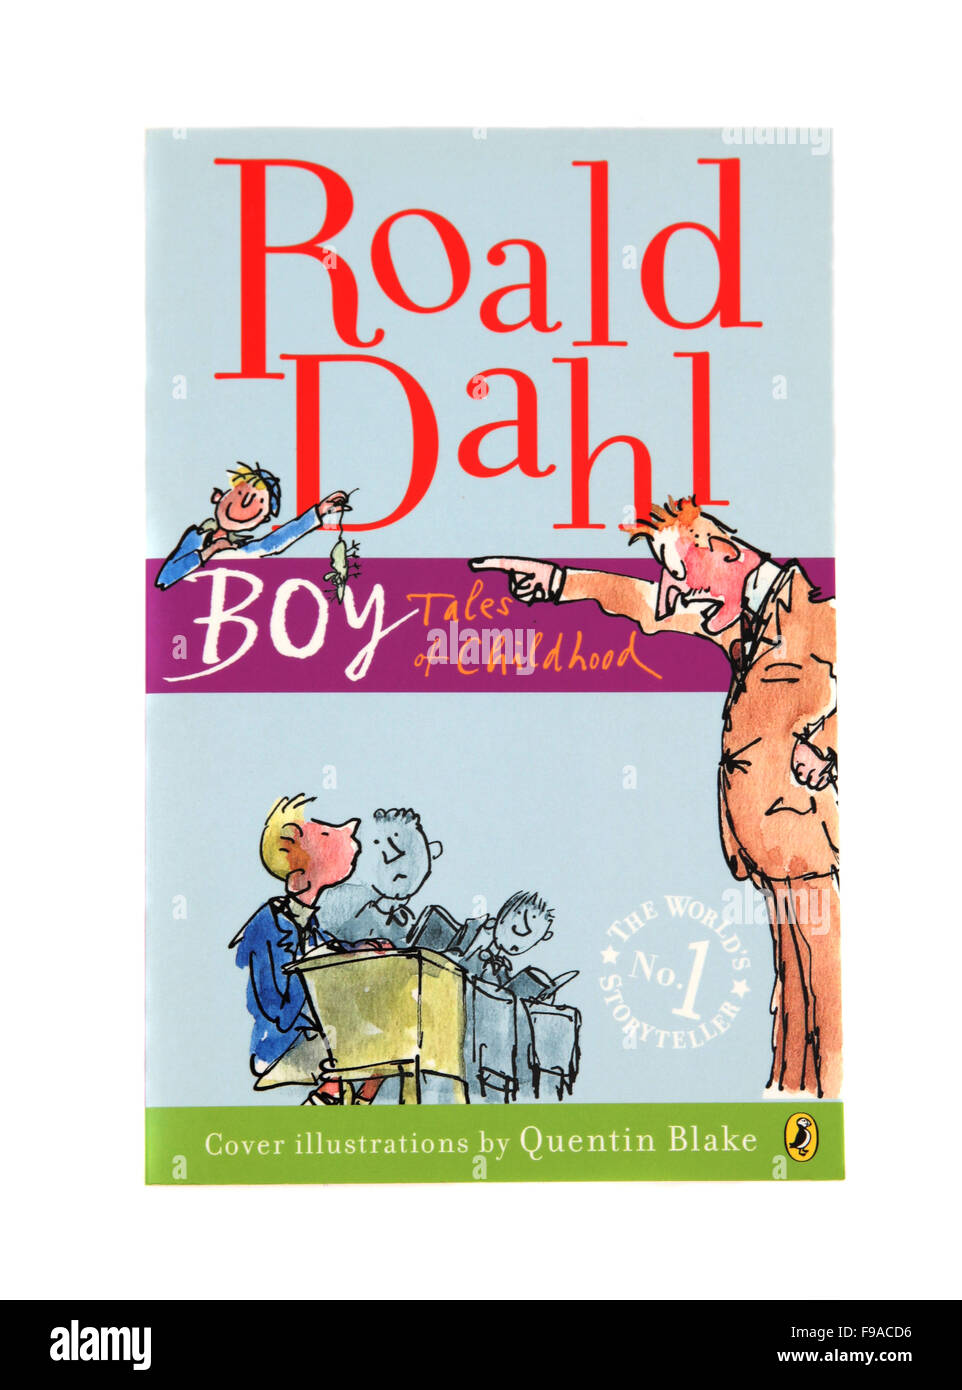 Boy Tales of Childhood, a children's book by Roald Dahl - Stock Image